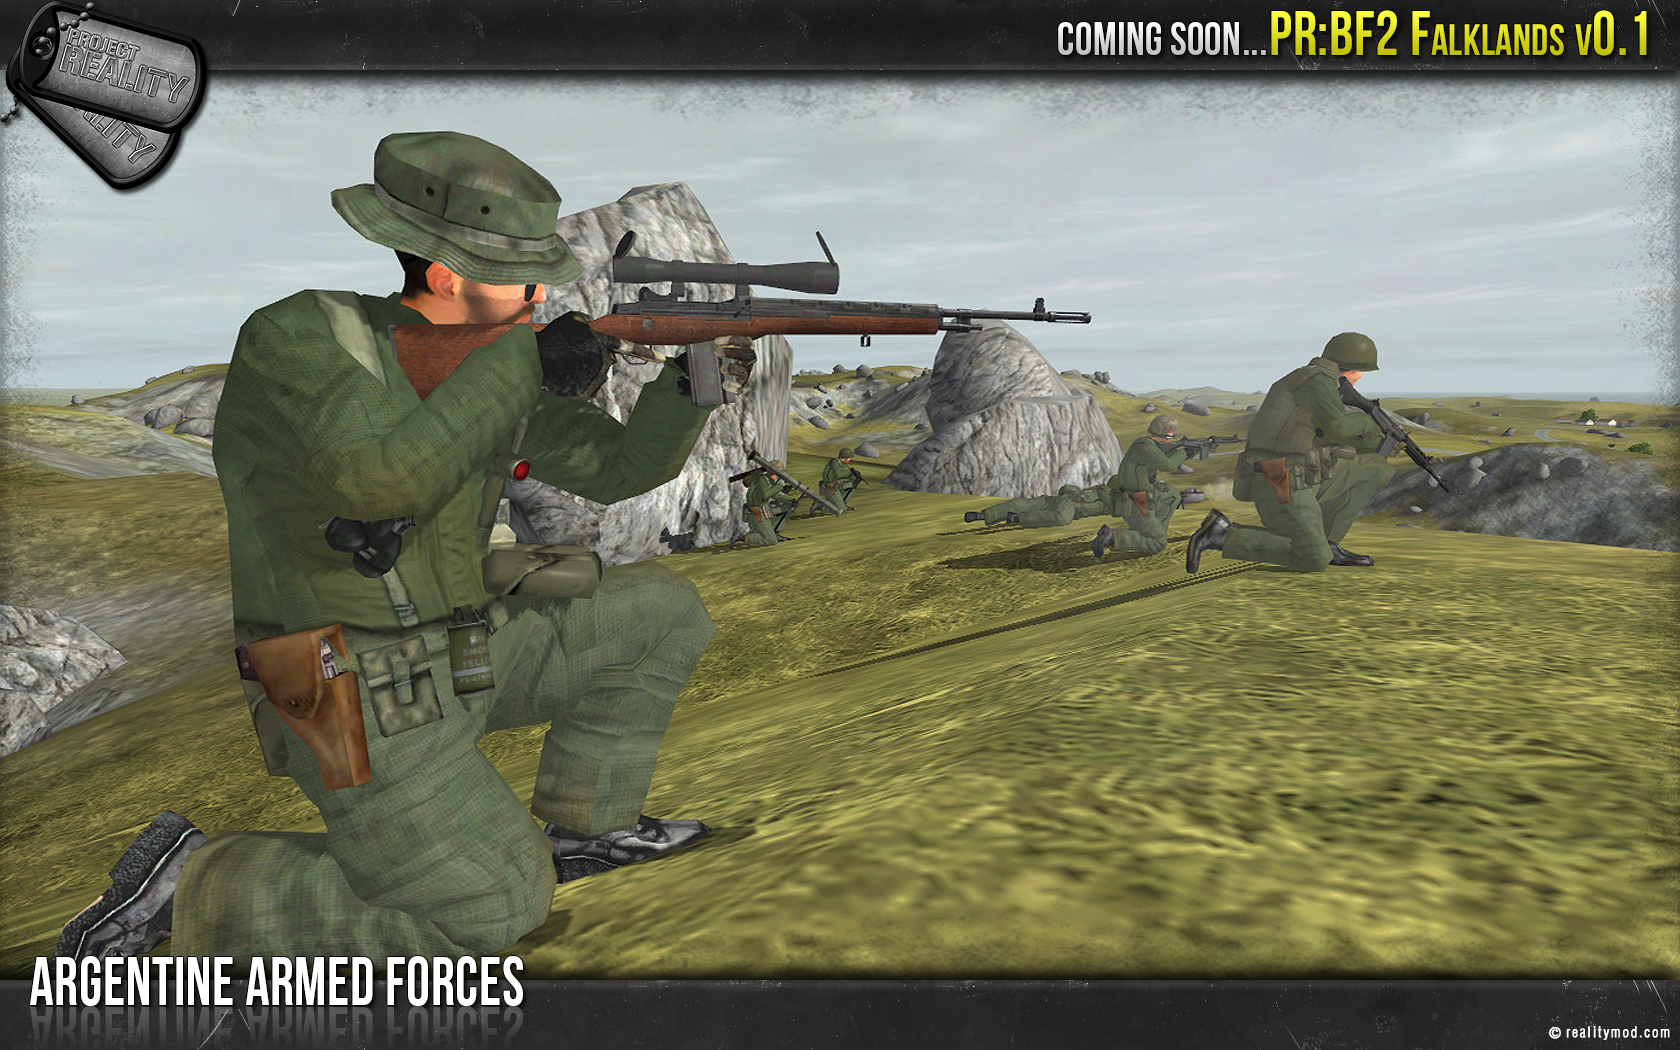 bf2 project reality Prta - project reality teamwork alliance log in or sign up prta - project reality teamwork alliance  bf2 name: clund damn i need to add login and upload .